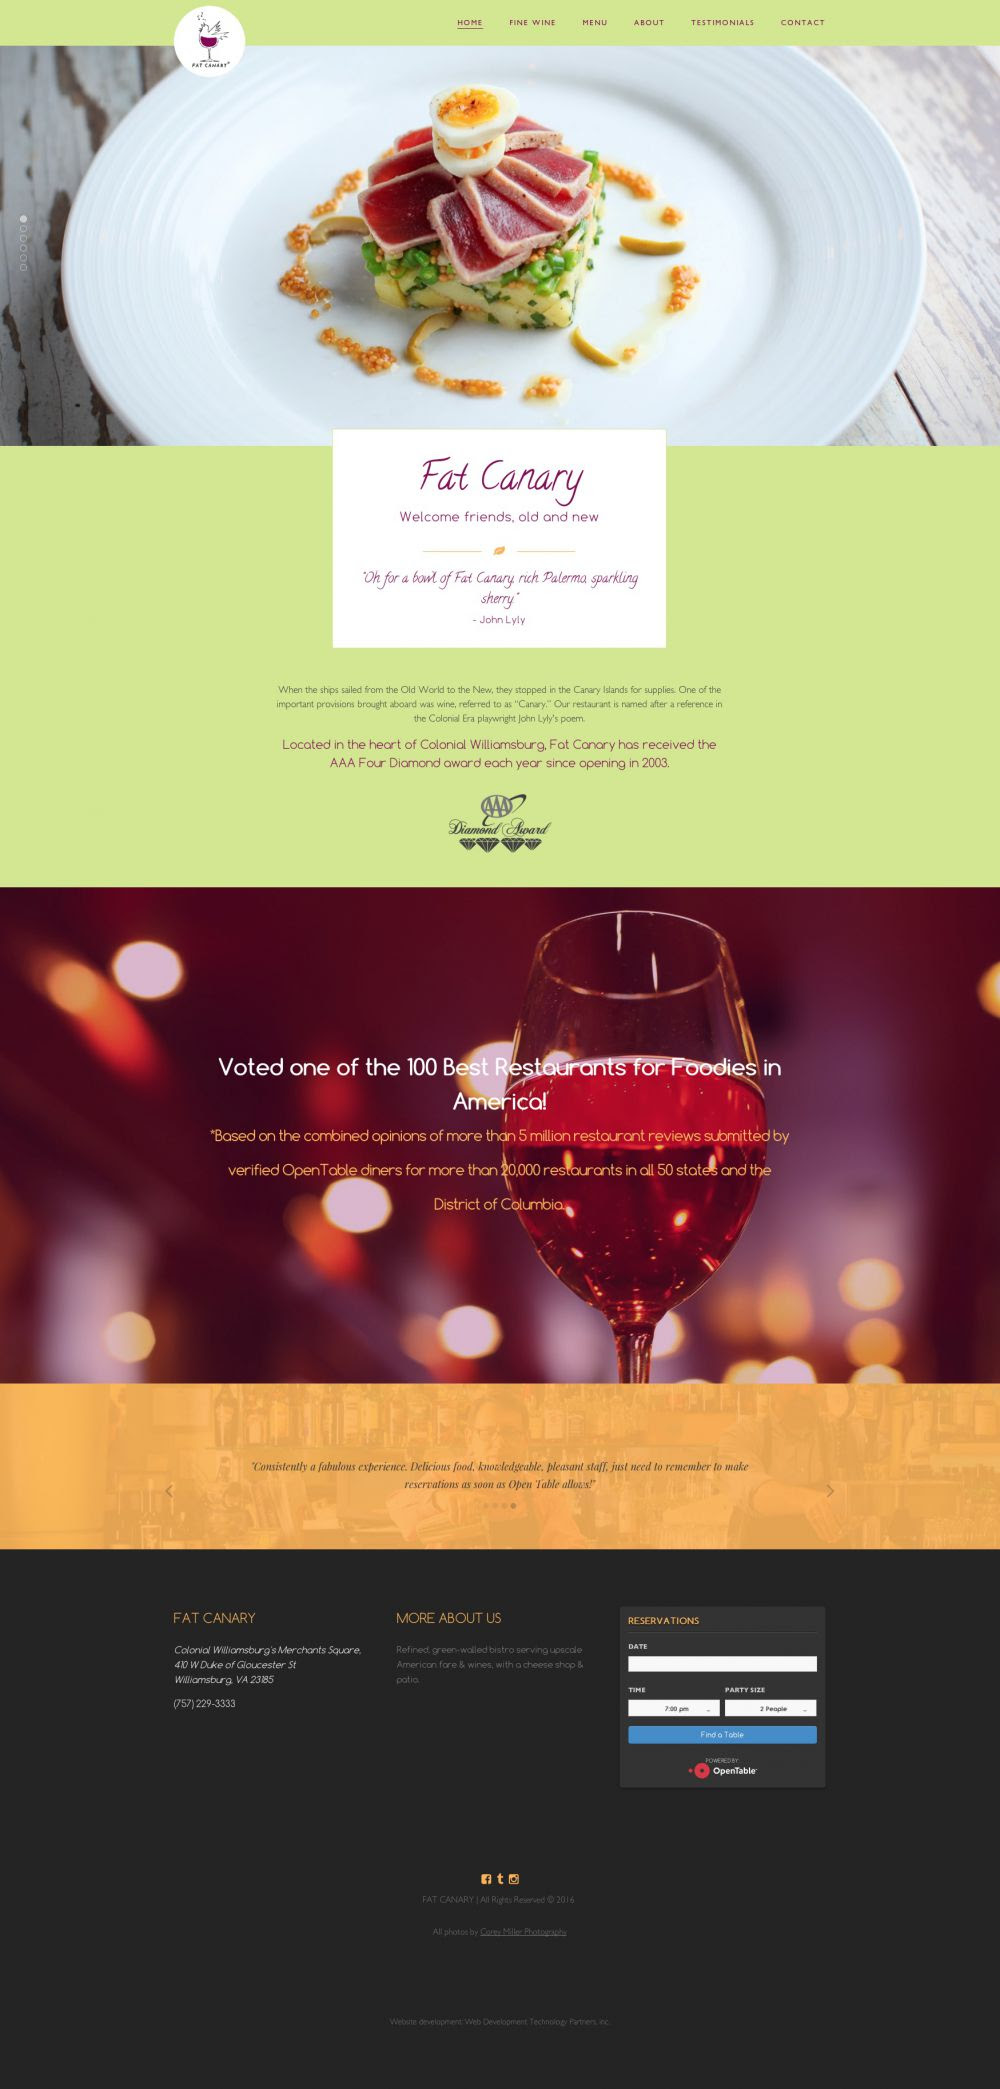 Fat Canary Restaurant Web Development Technology Partners Inc